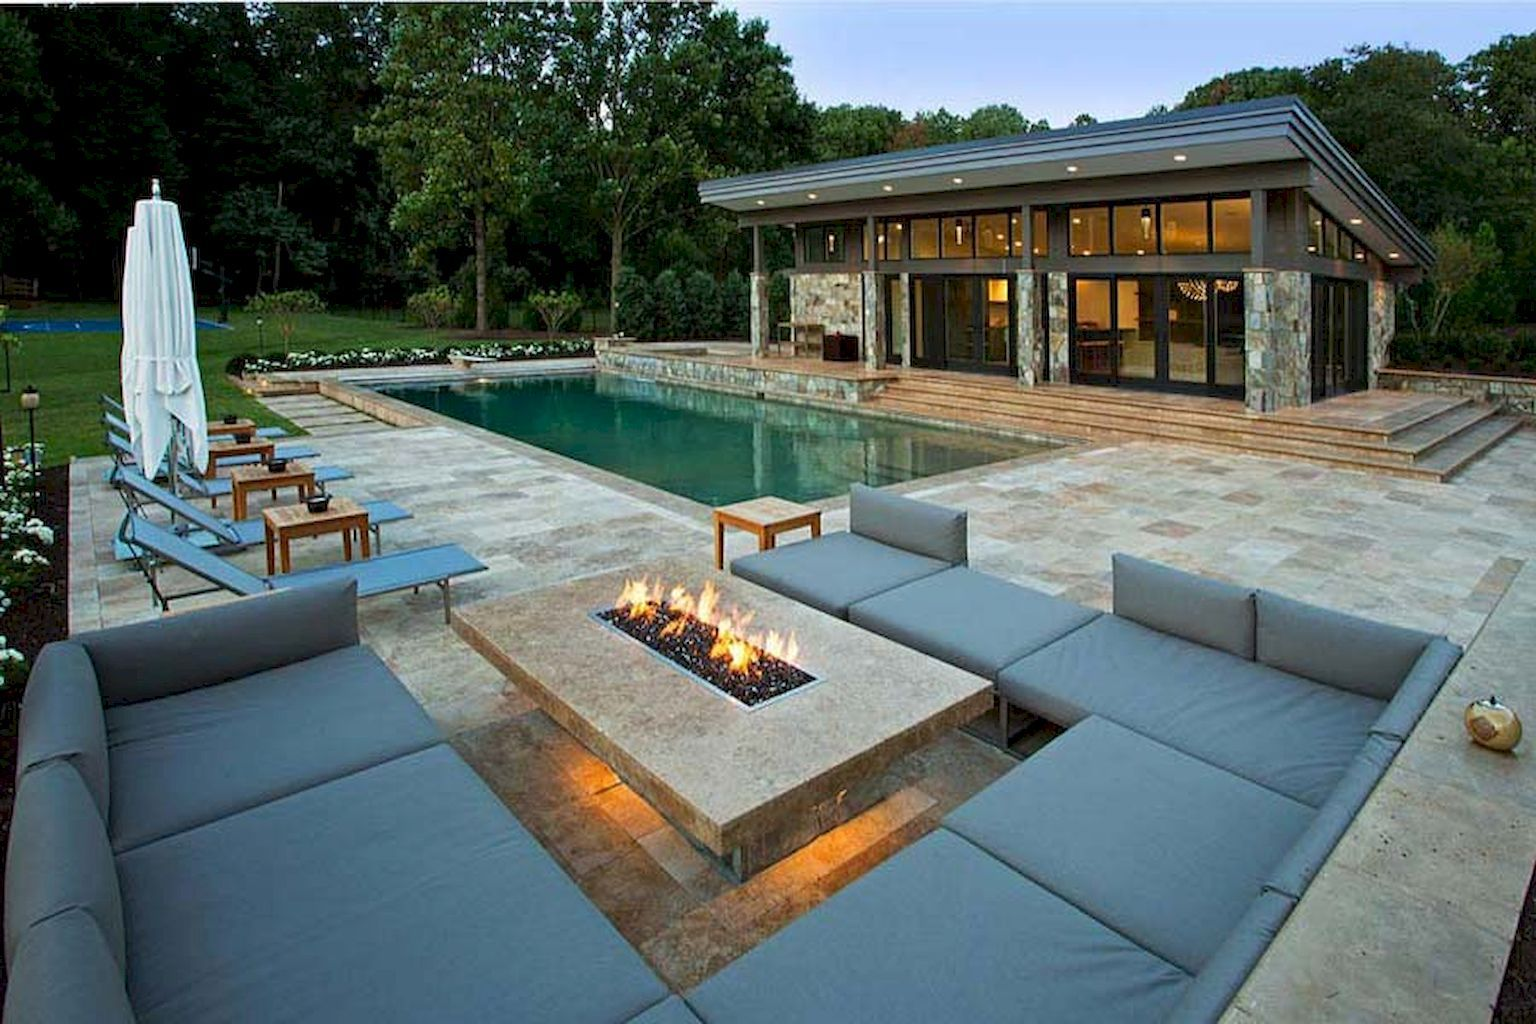 35 Easy DIY Fire Pit Ideas for Backyard Landscaping Fire